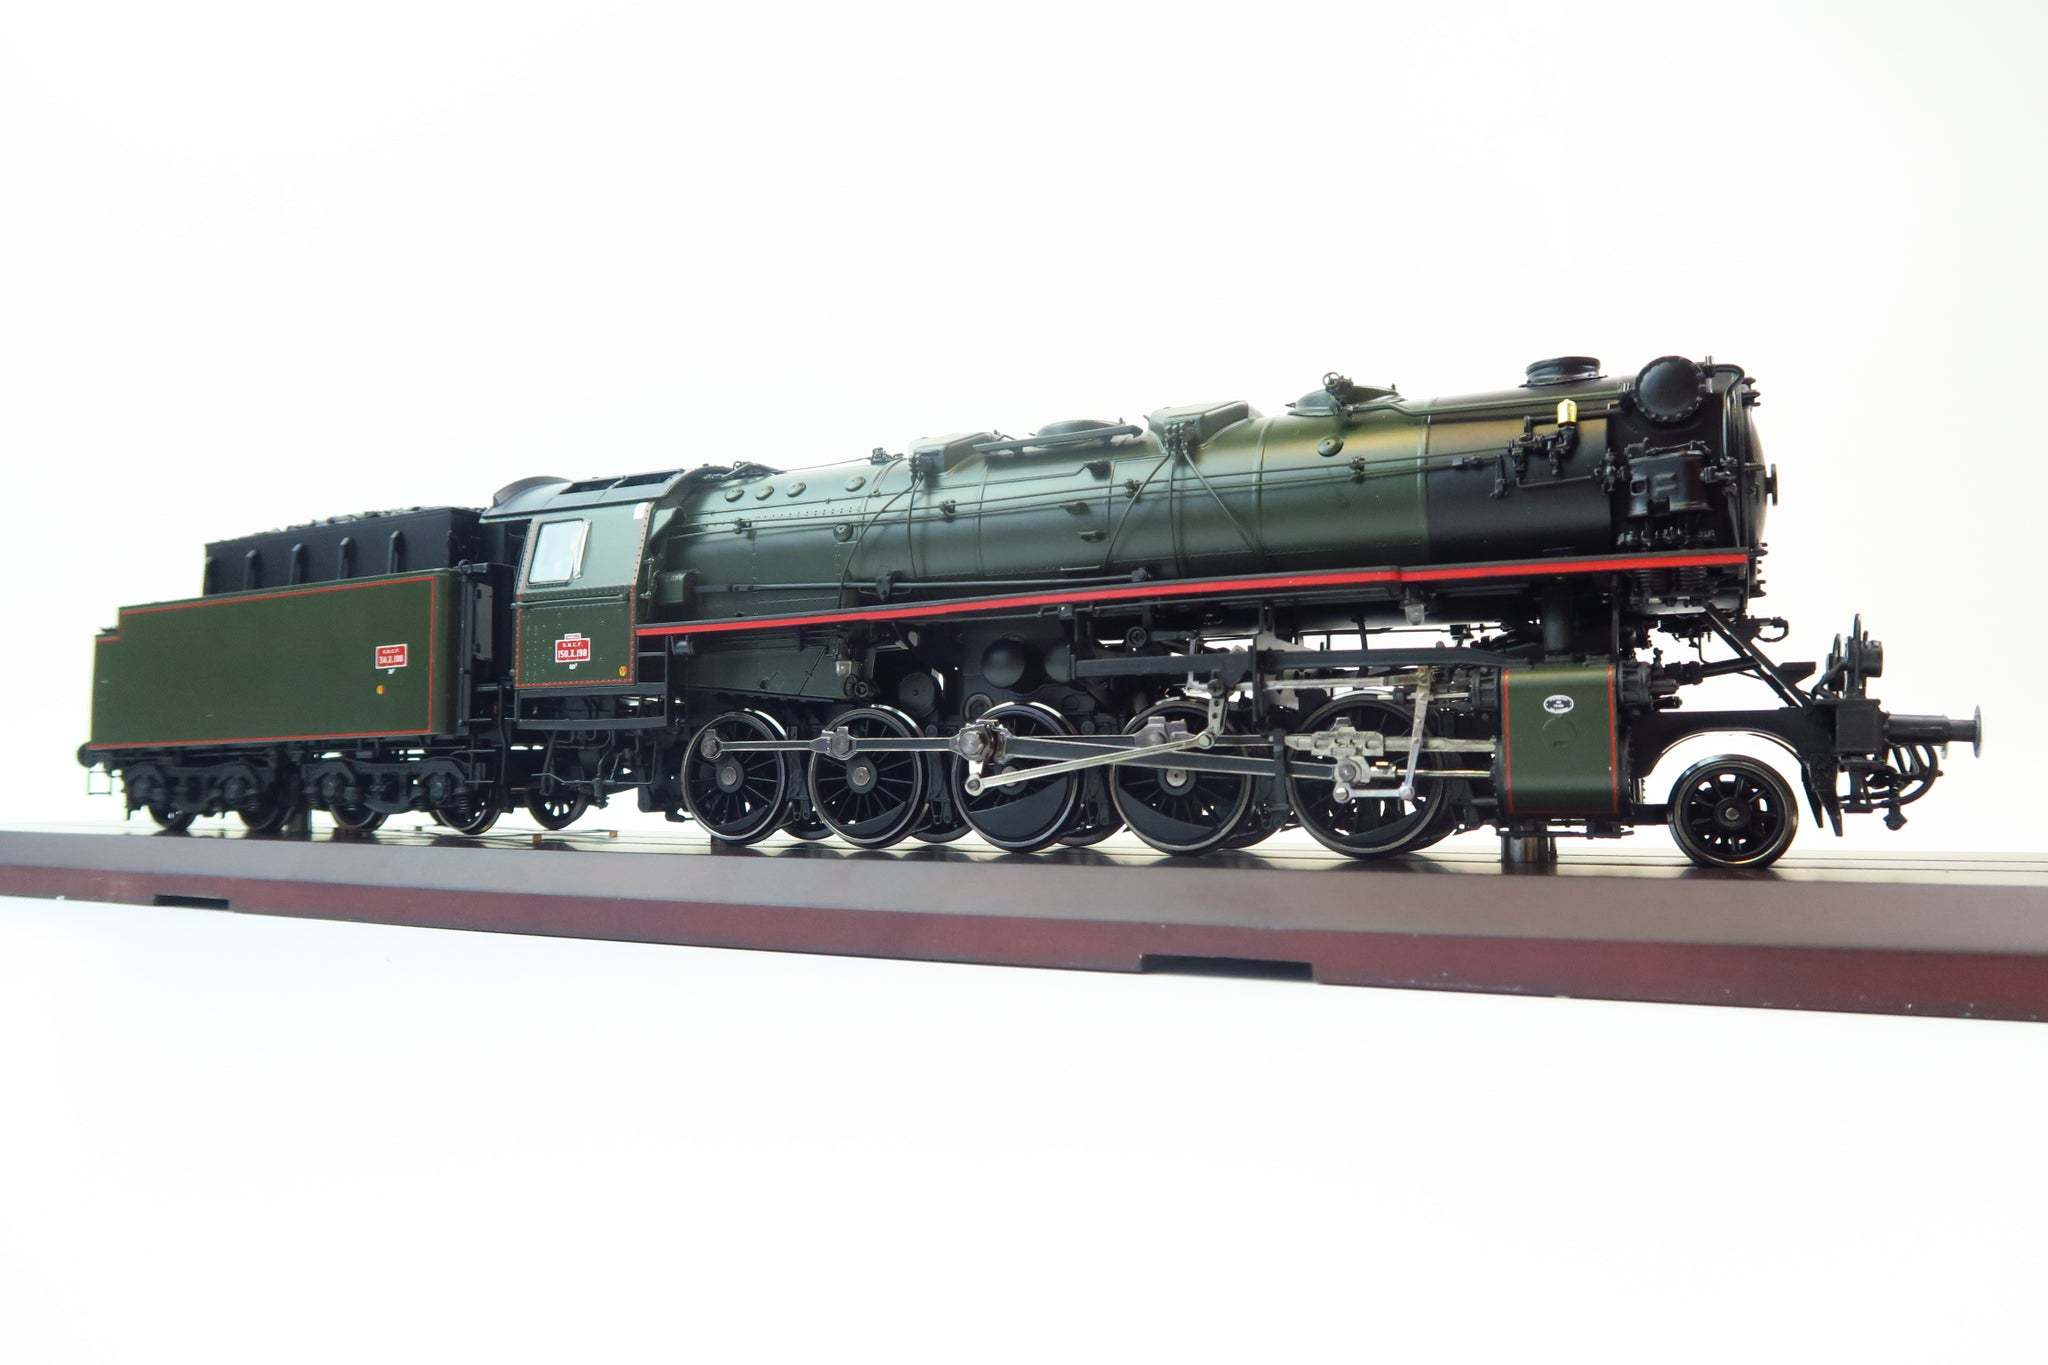 MTH 22-3528-2 2-Rail Finescale O Gauge SNCF 150 X Era IIIa Steam Engine Proto Sound 3.0!